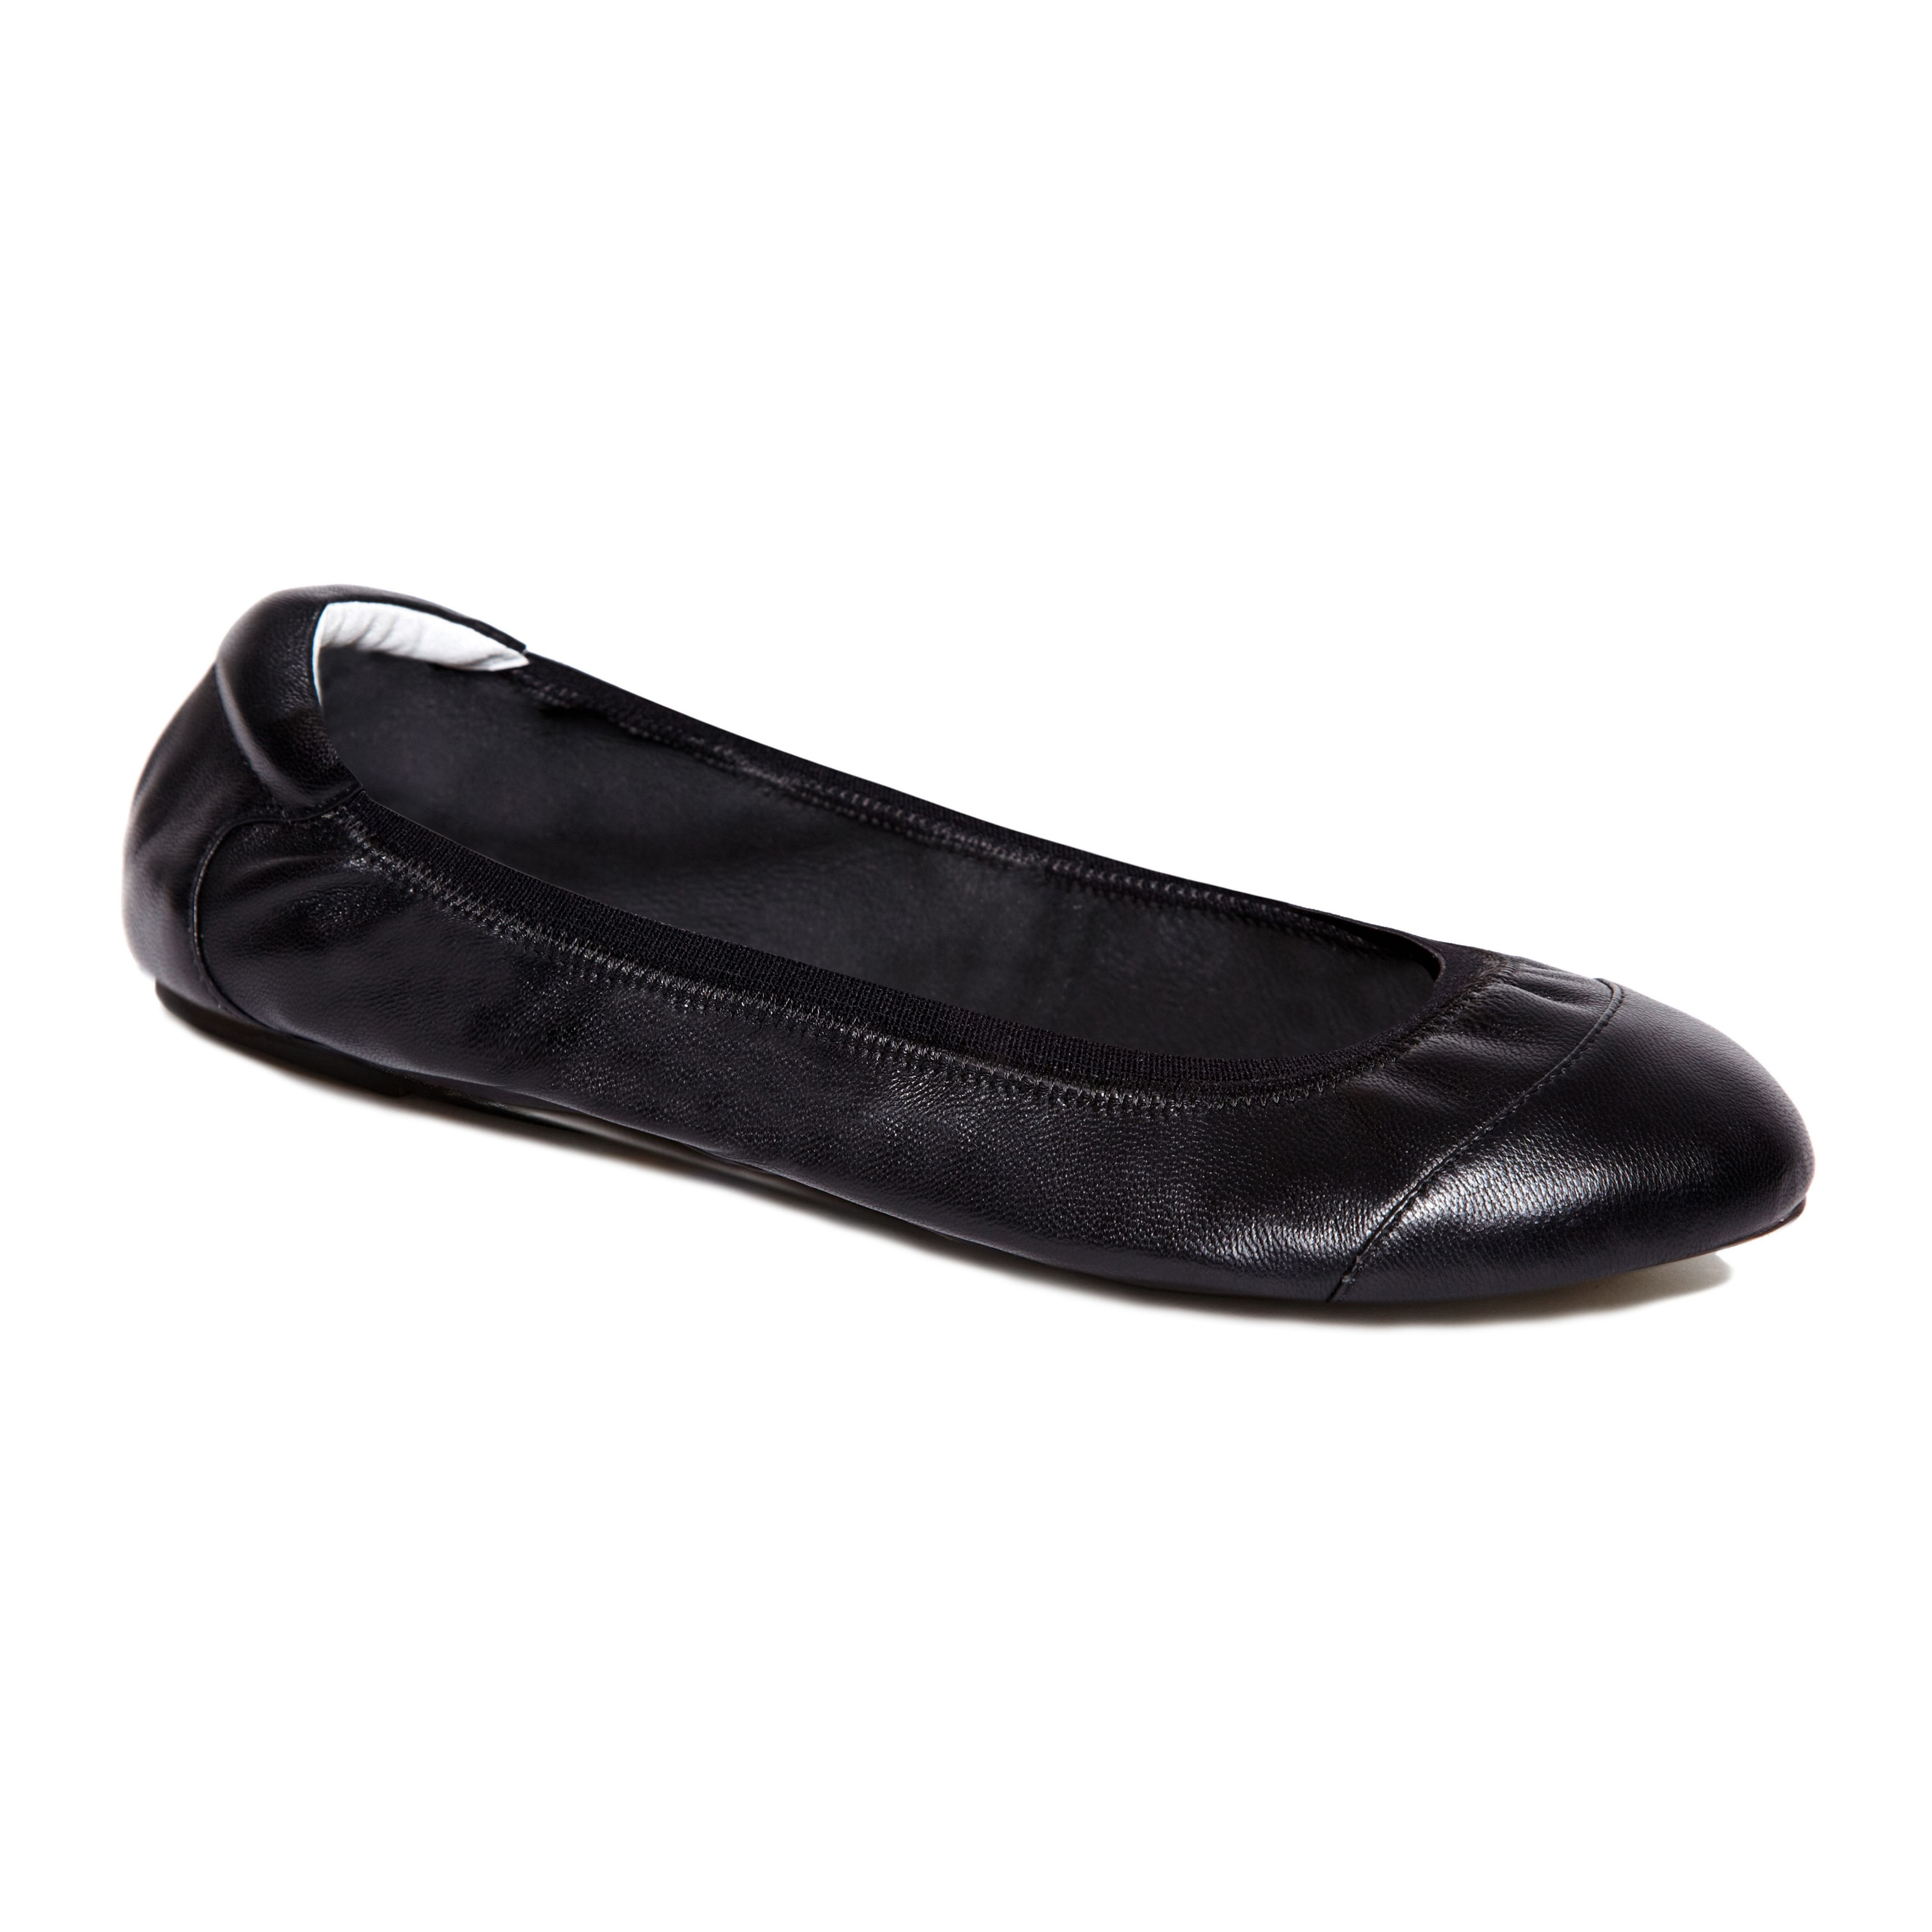 Brixton black leather foldable ballerina